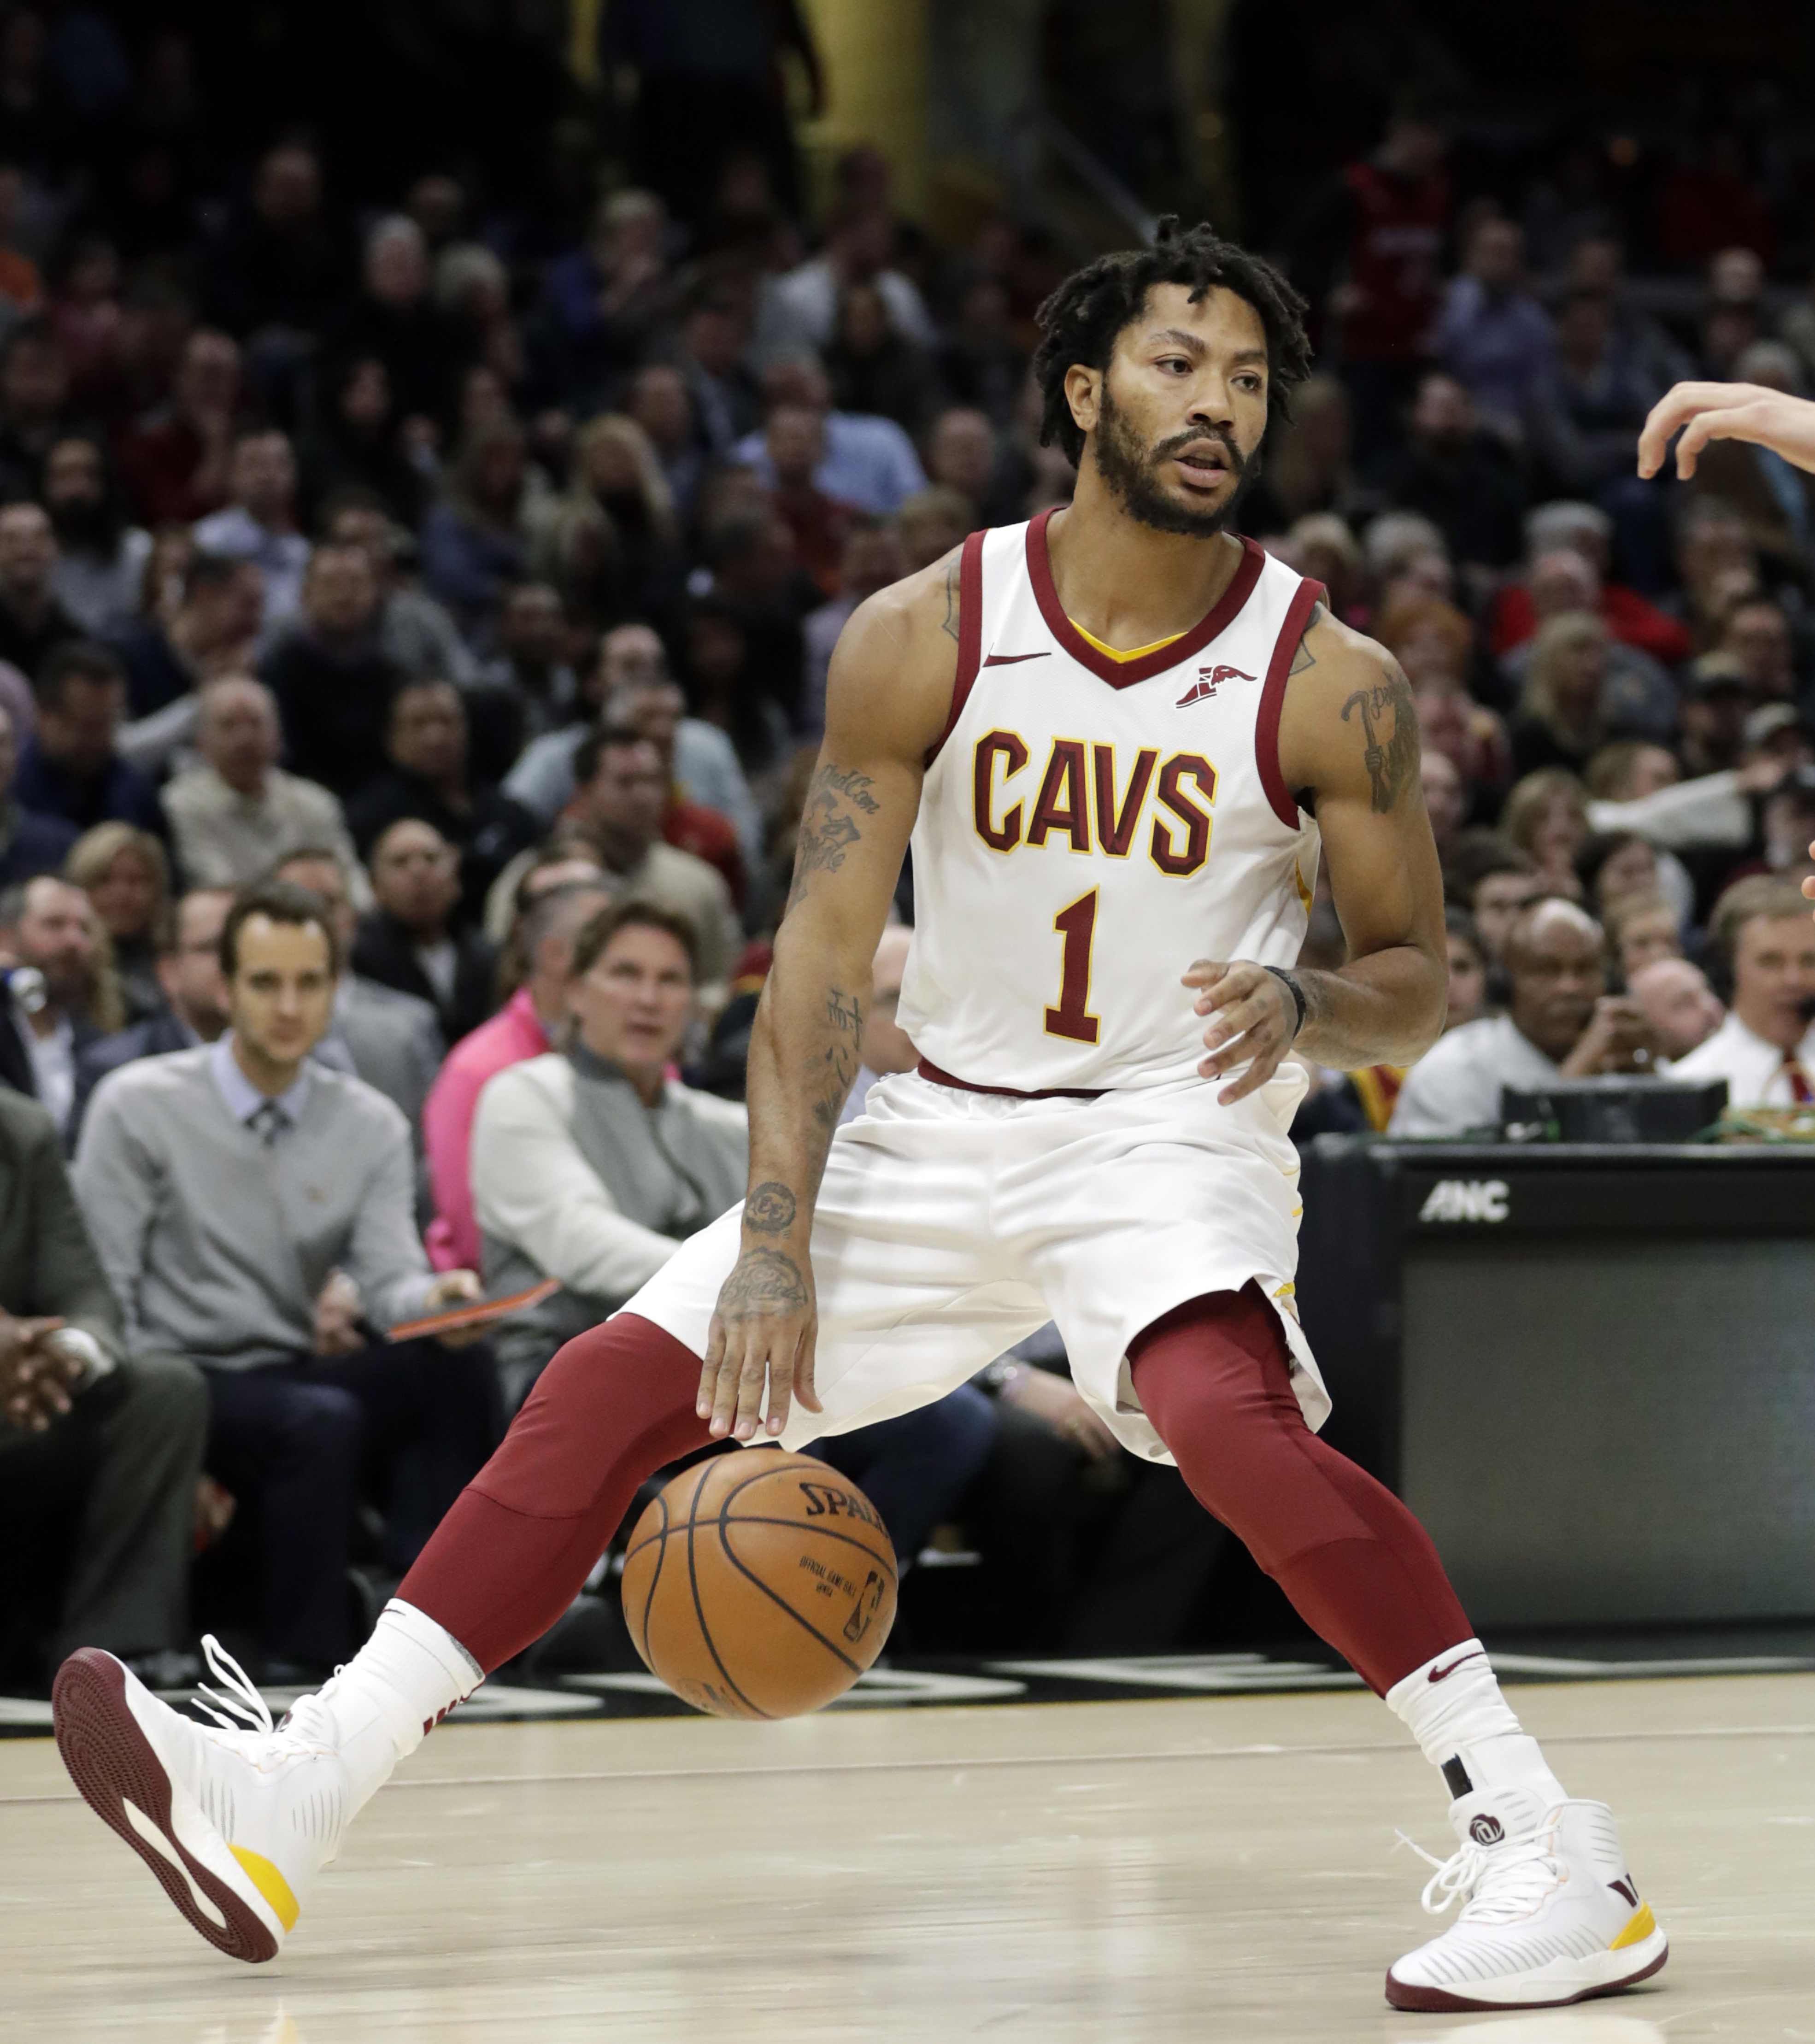 637e0ed993b Basketball  Utah Jazz waive Derrick Rose after Cleveland Cavaliers trade